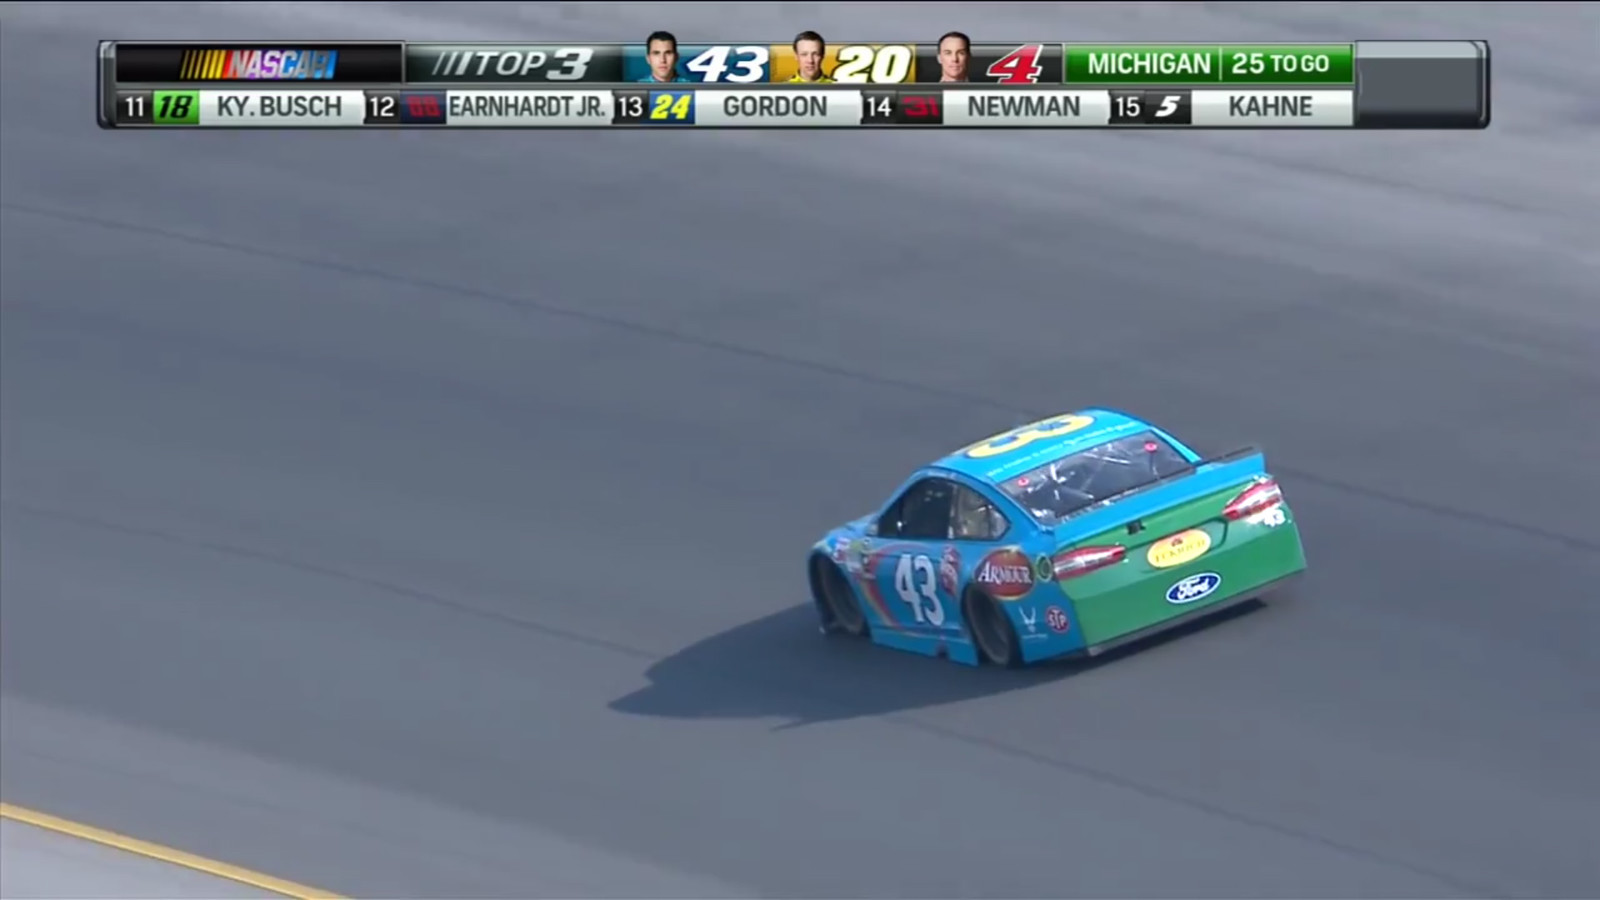 Almirola leading the field at Michigan International Speedway. Screen capture from NBC's live broadcast of the Pure Michigan 400 on August 16th, 2015. (Credit: NBC Sports)